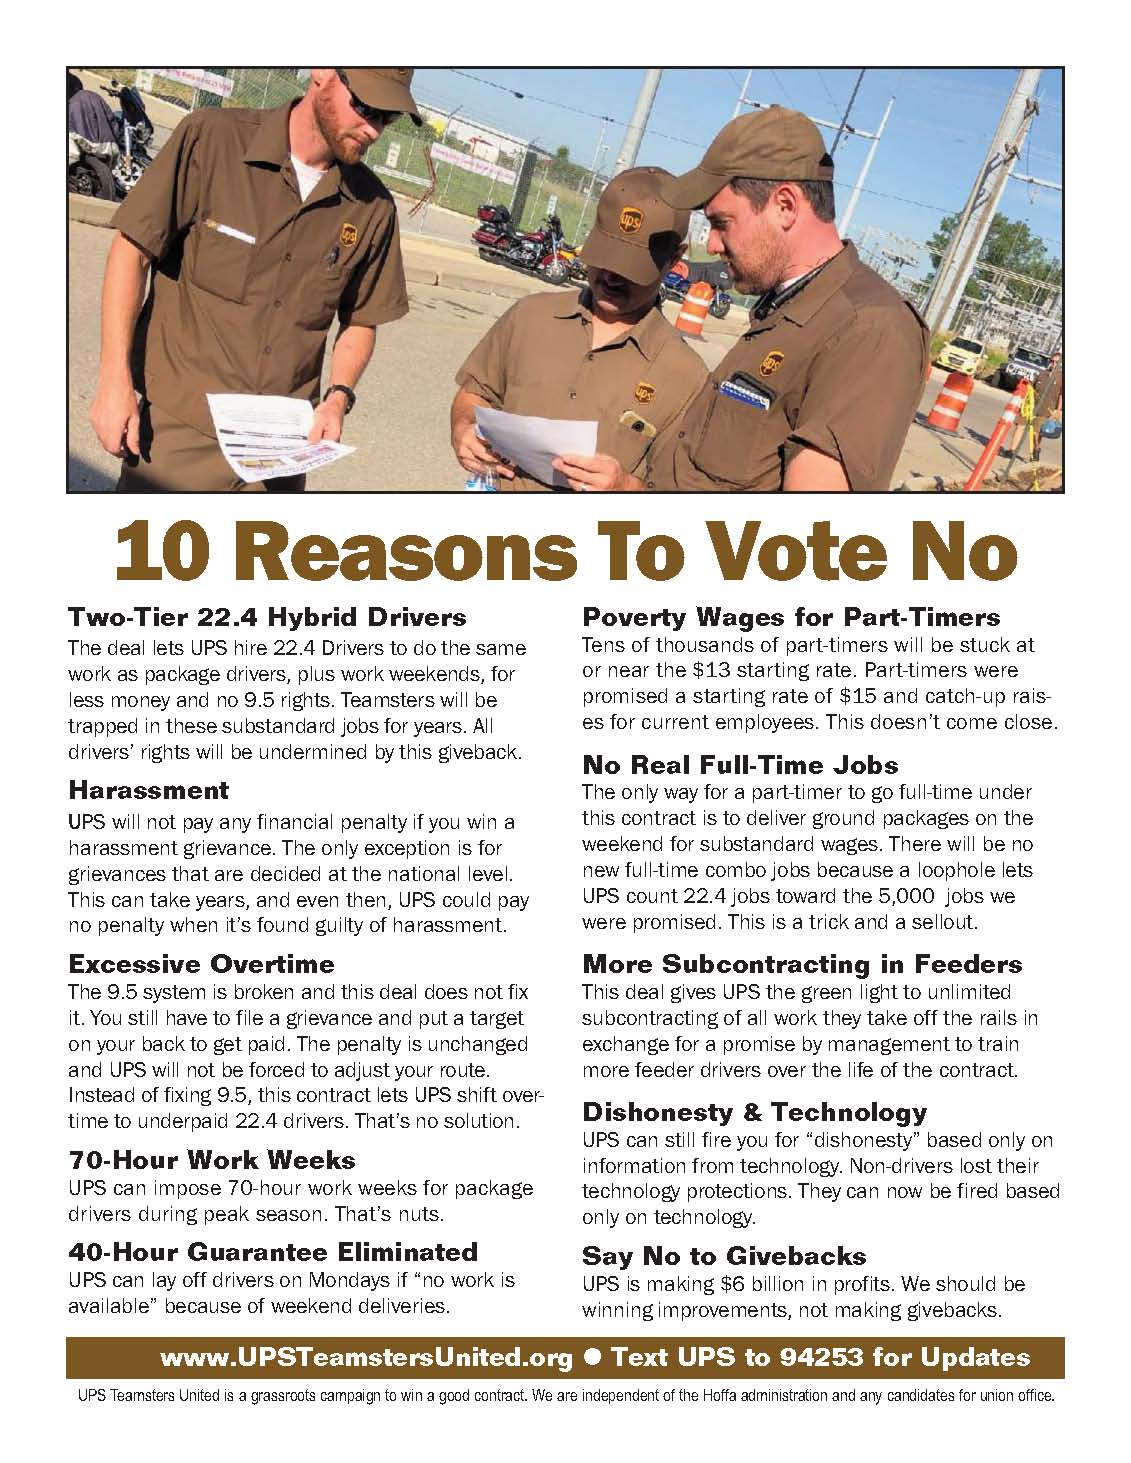 10-reasons-to-vote-no-v2-2.jpg